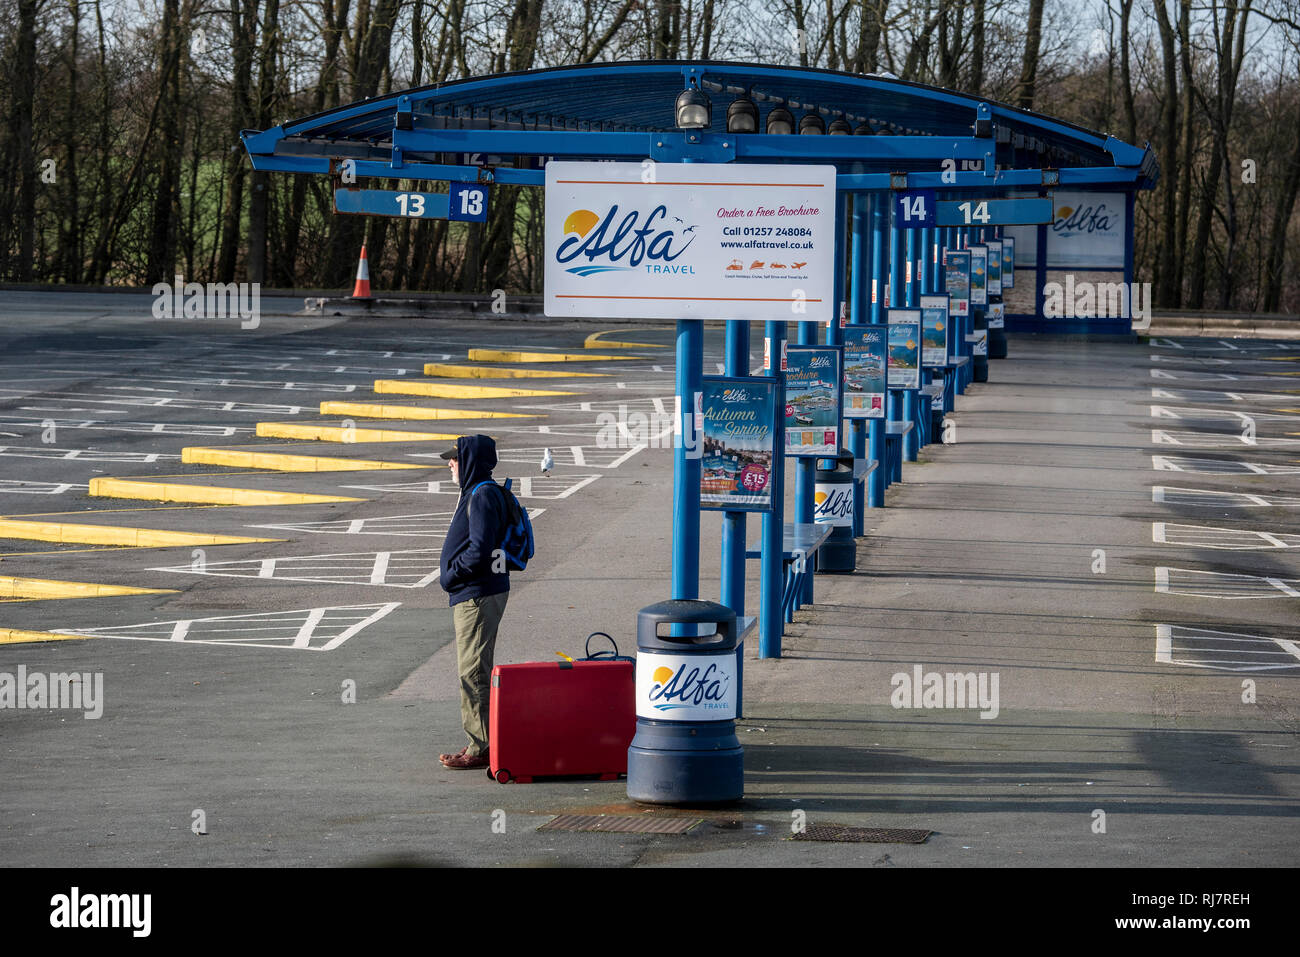 Man waiting for a bus at bus shelter. - Stock Image